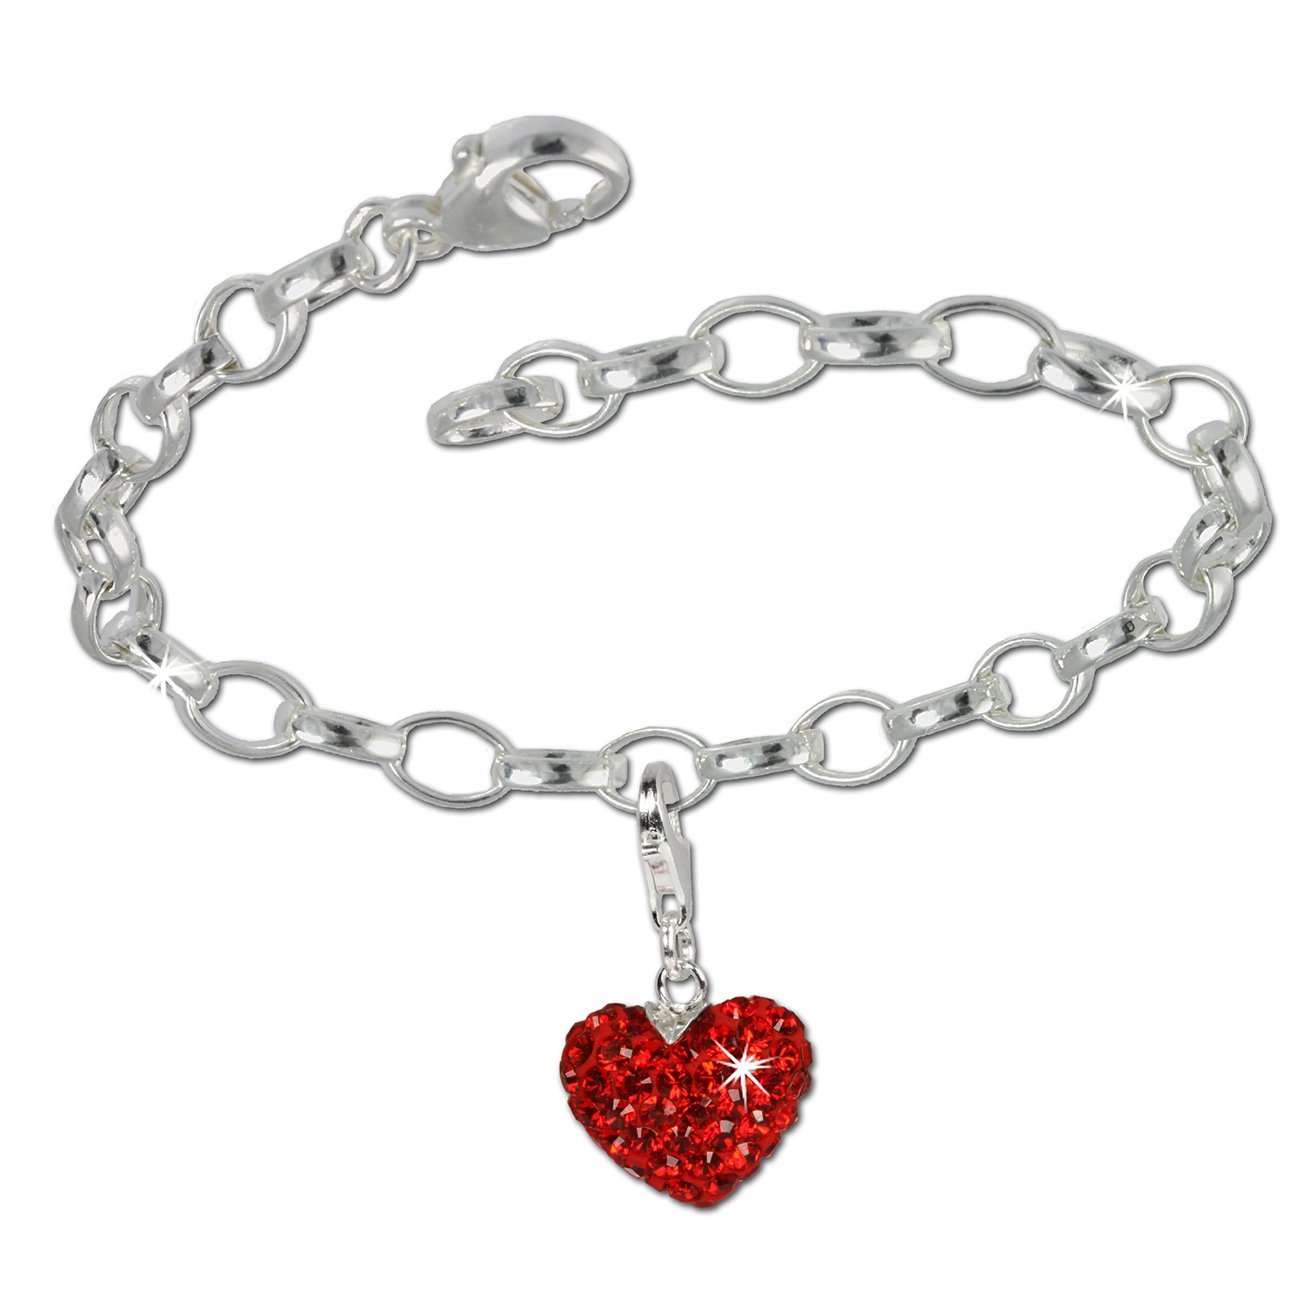 SilberDream Charms Kette Set - Liebe rot - Swarovski Kristalle 925 Sterling Silber Charm Armband - FCA130 Charms Sets